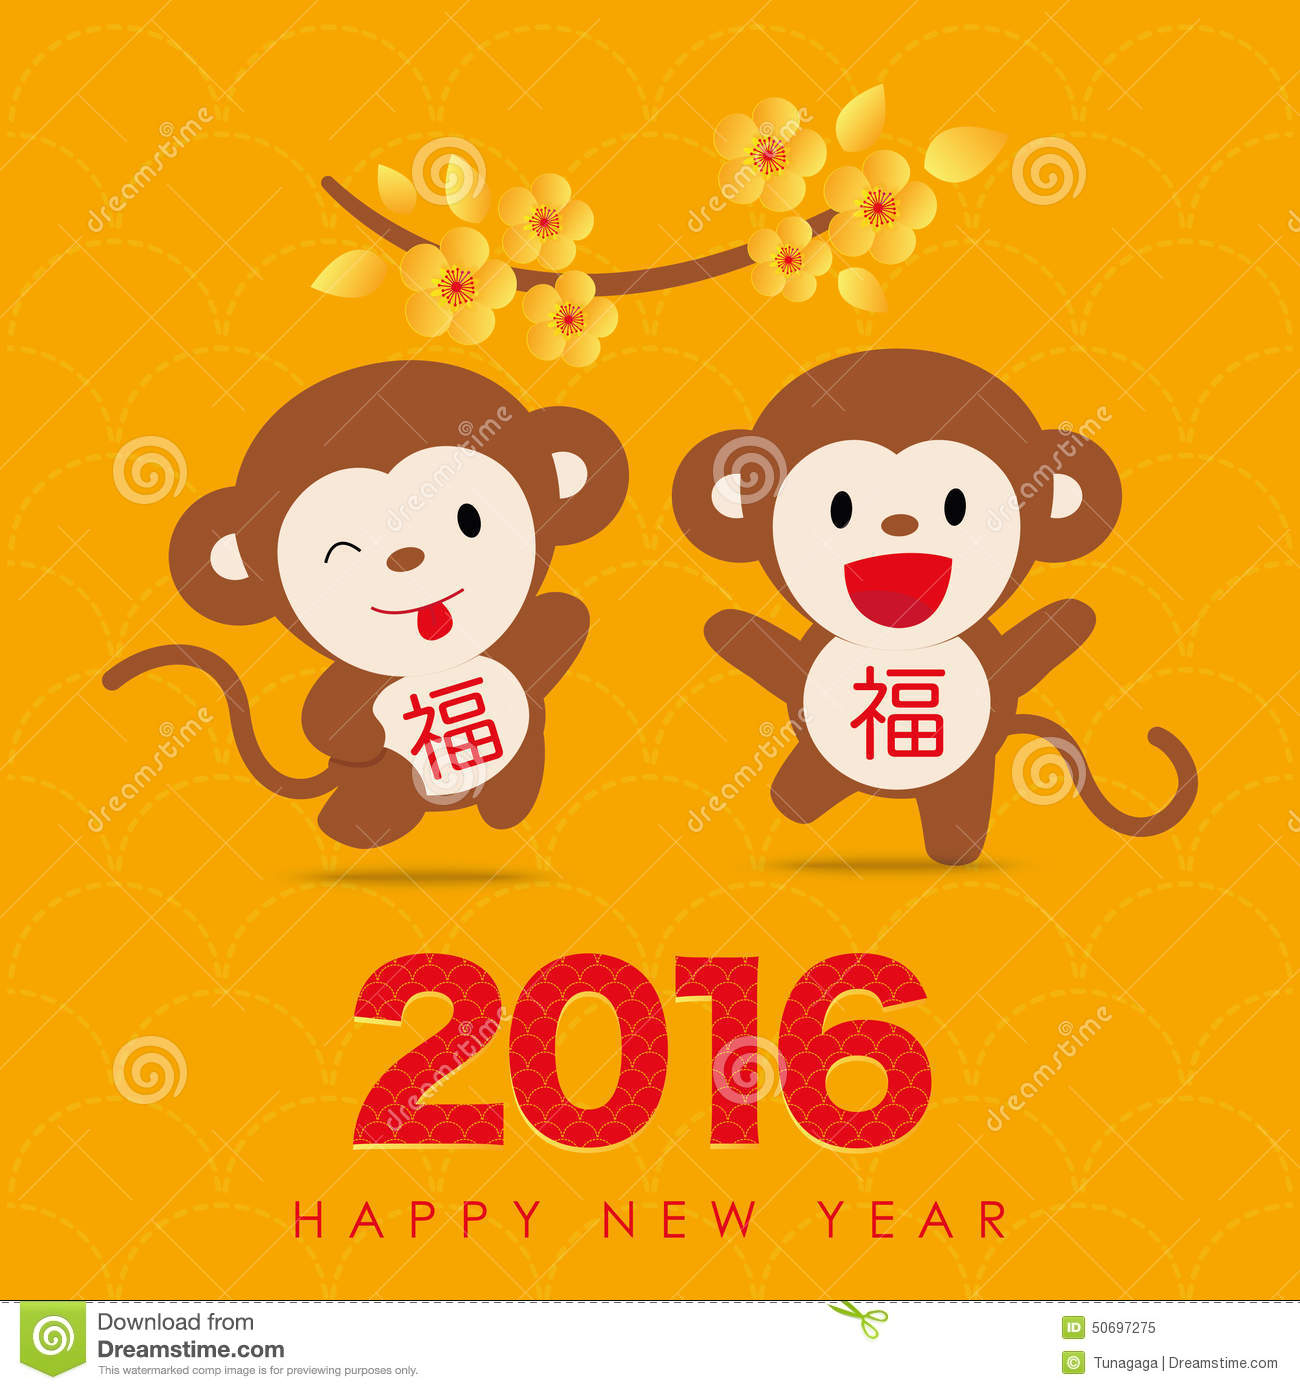 2016 Monkey Chinese New Year Greeting Card Design Stock